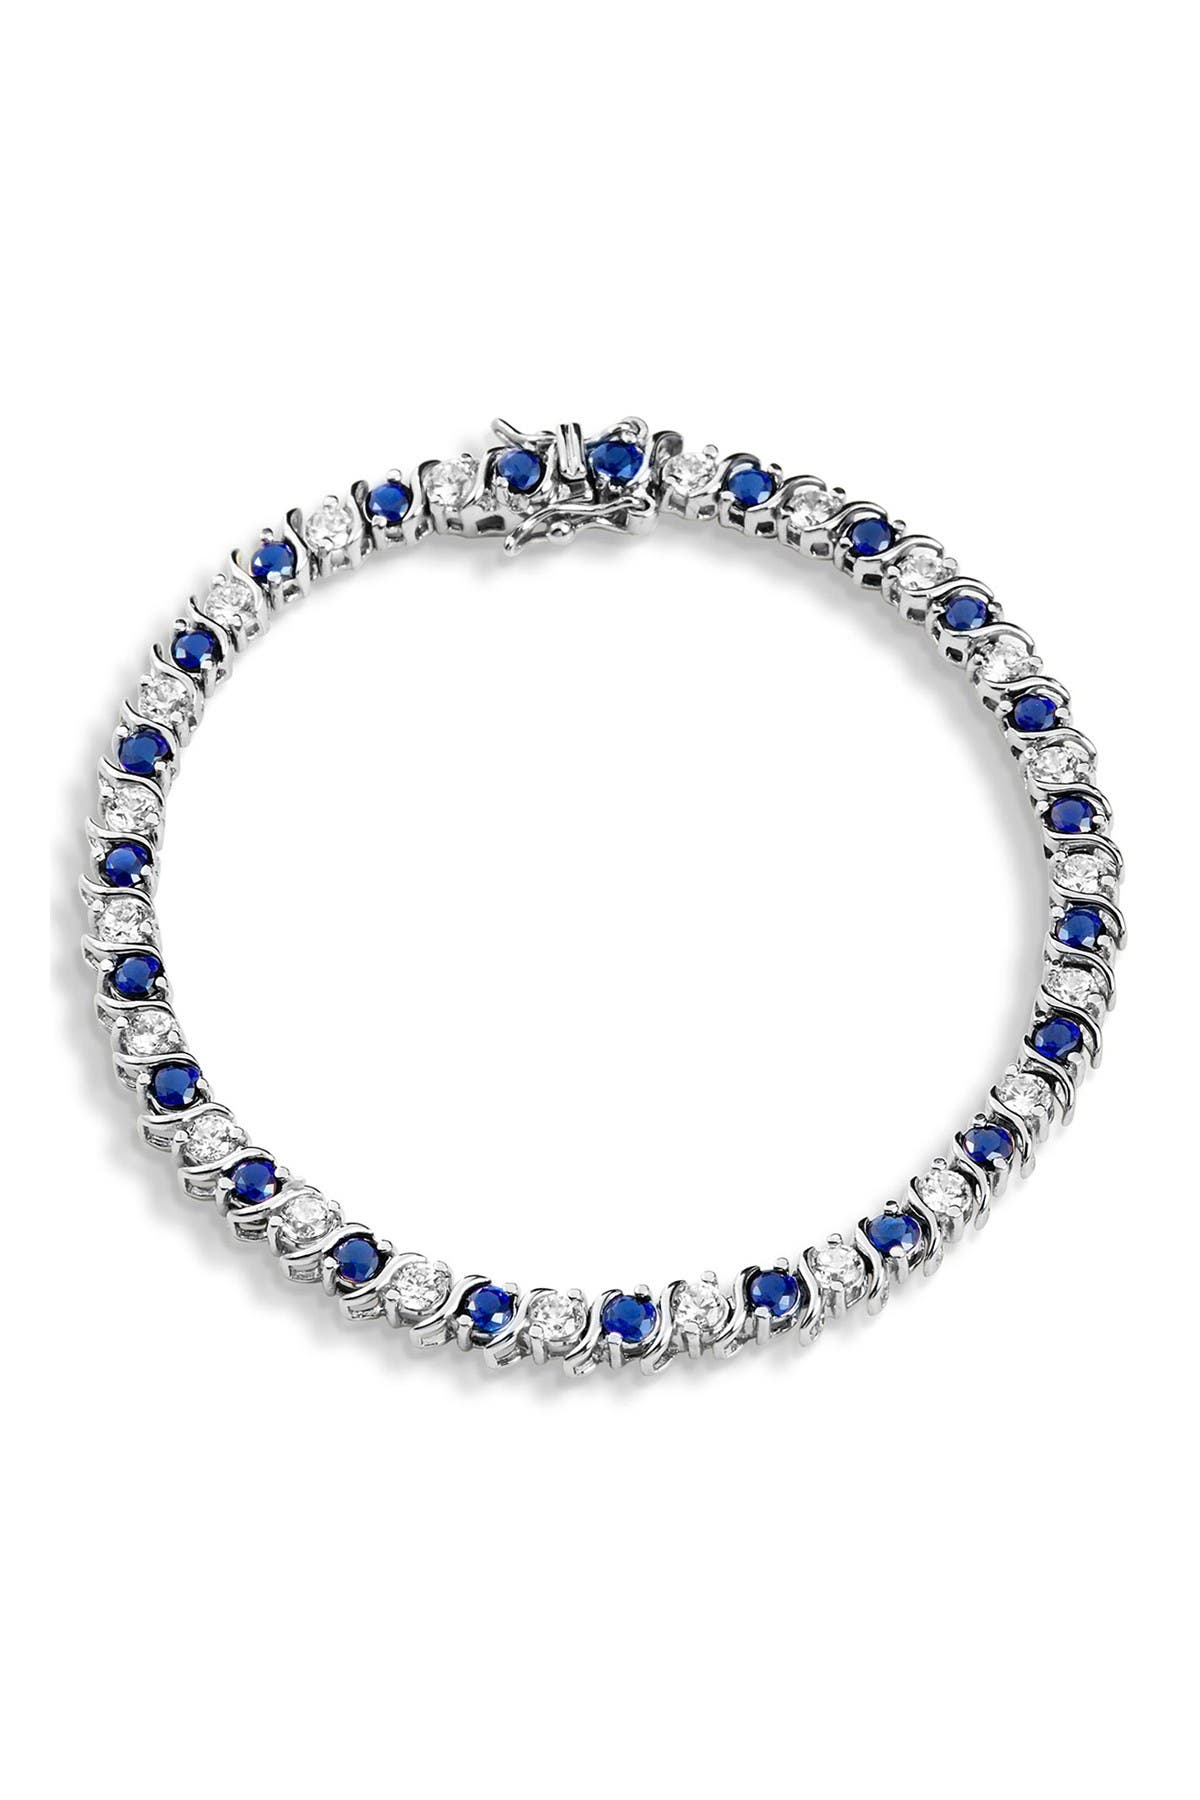 Savvy Cie Sterling Silver Alternating Created Sapphire & CZ Tennis Bracelet at Nordstrom Rack